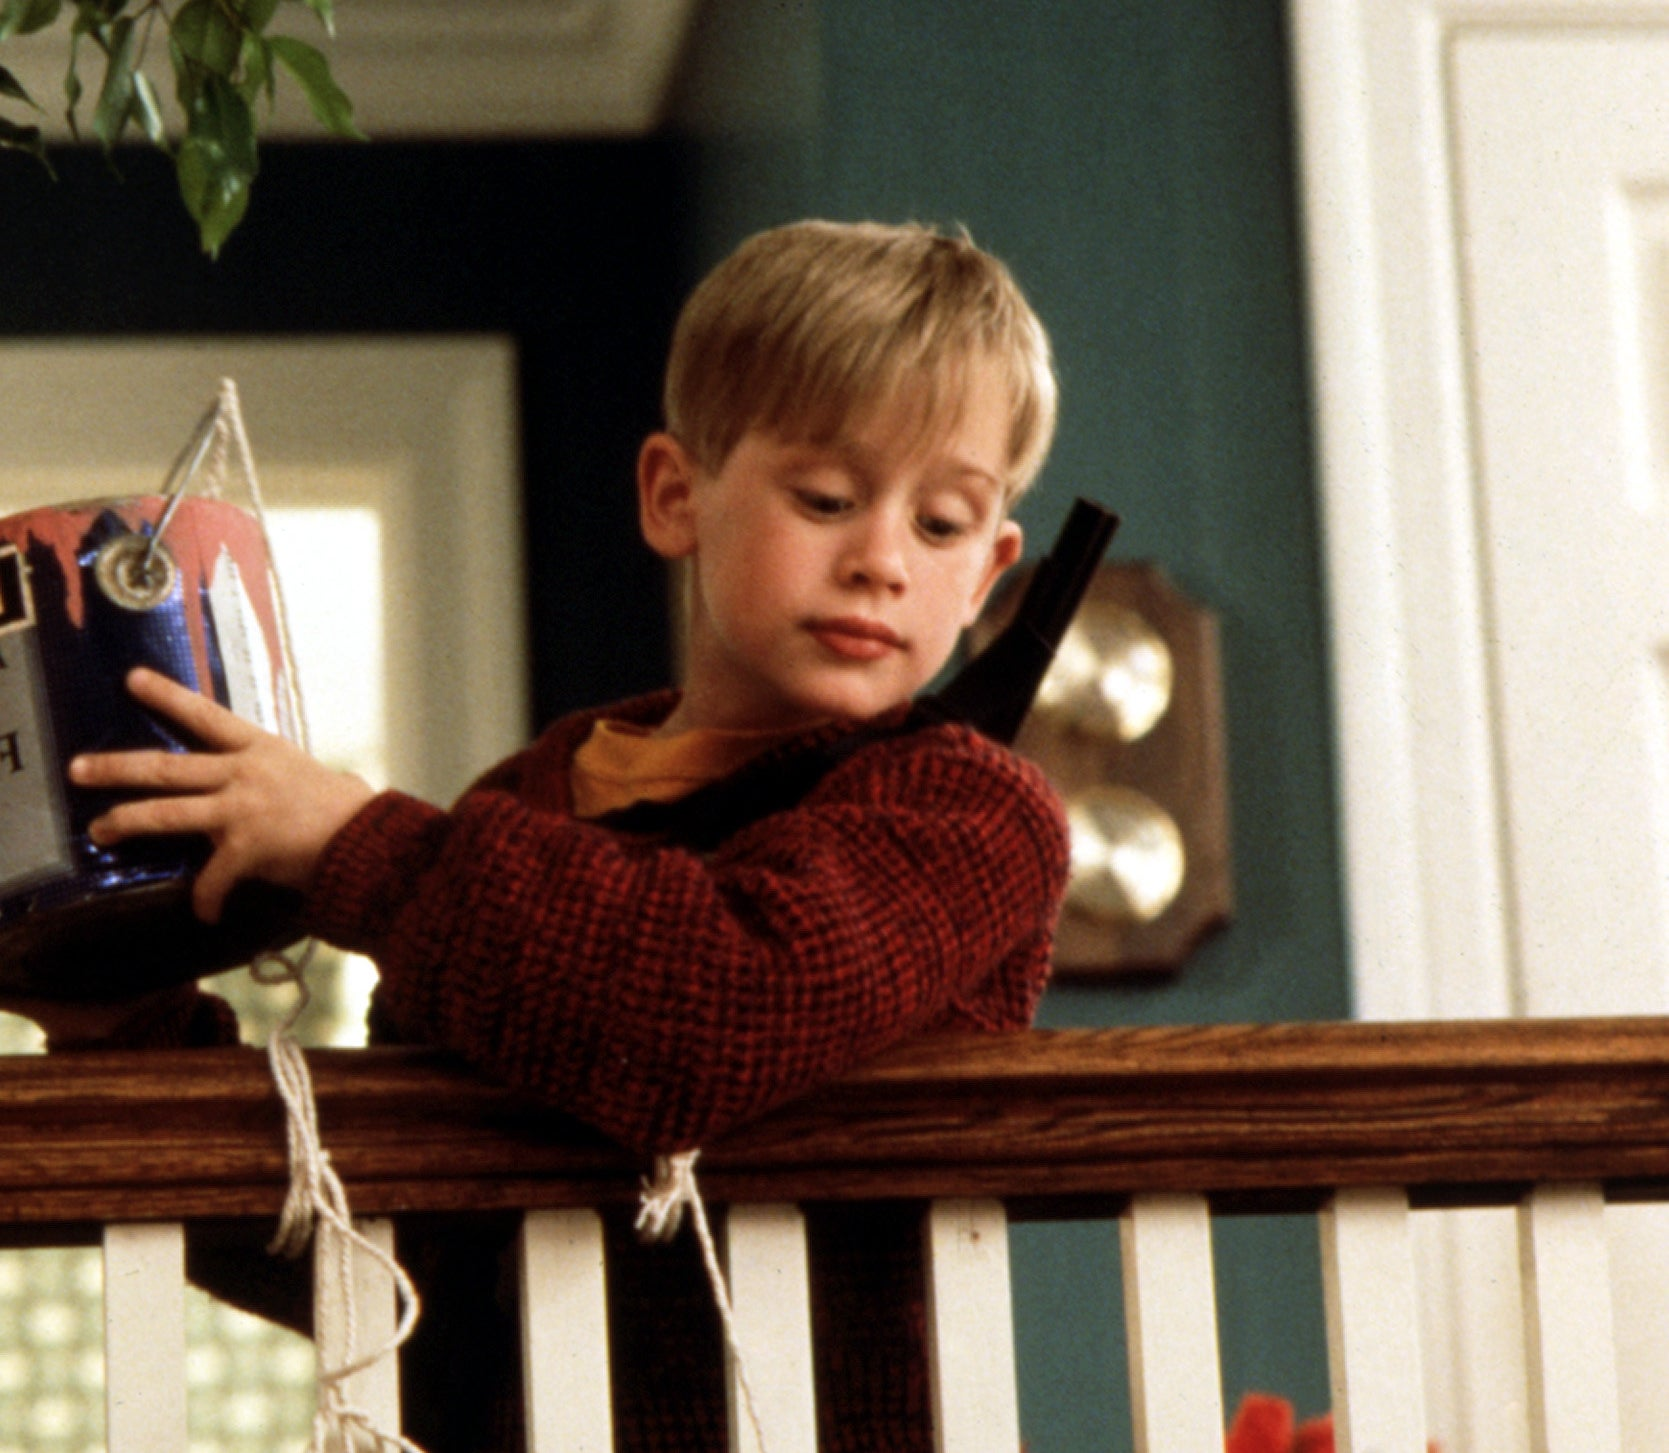 Macaulay Culkin as Kevin McCallister ready to dump a can of paint on his victims